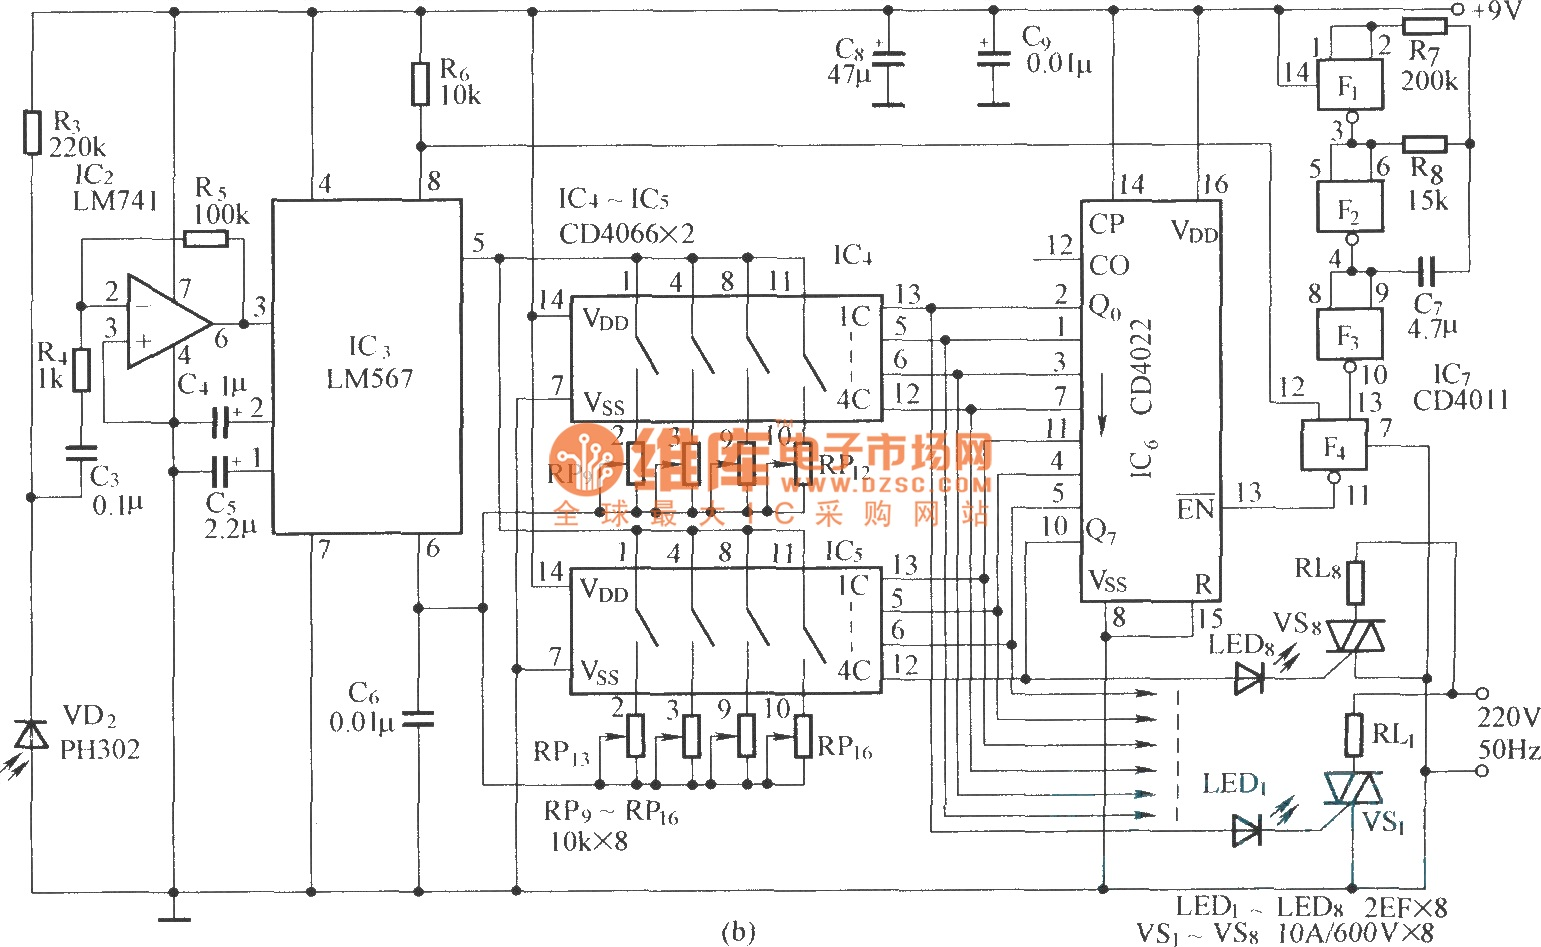 Using tone decoder infrared remote control circuit diagram